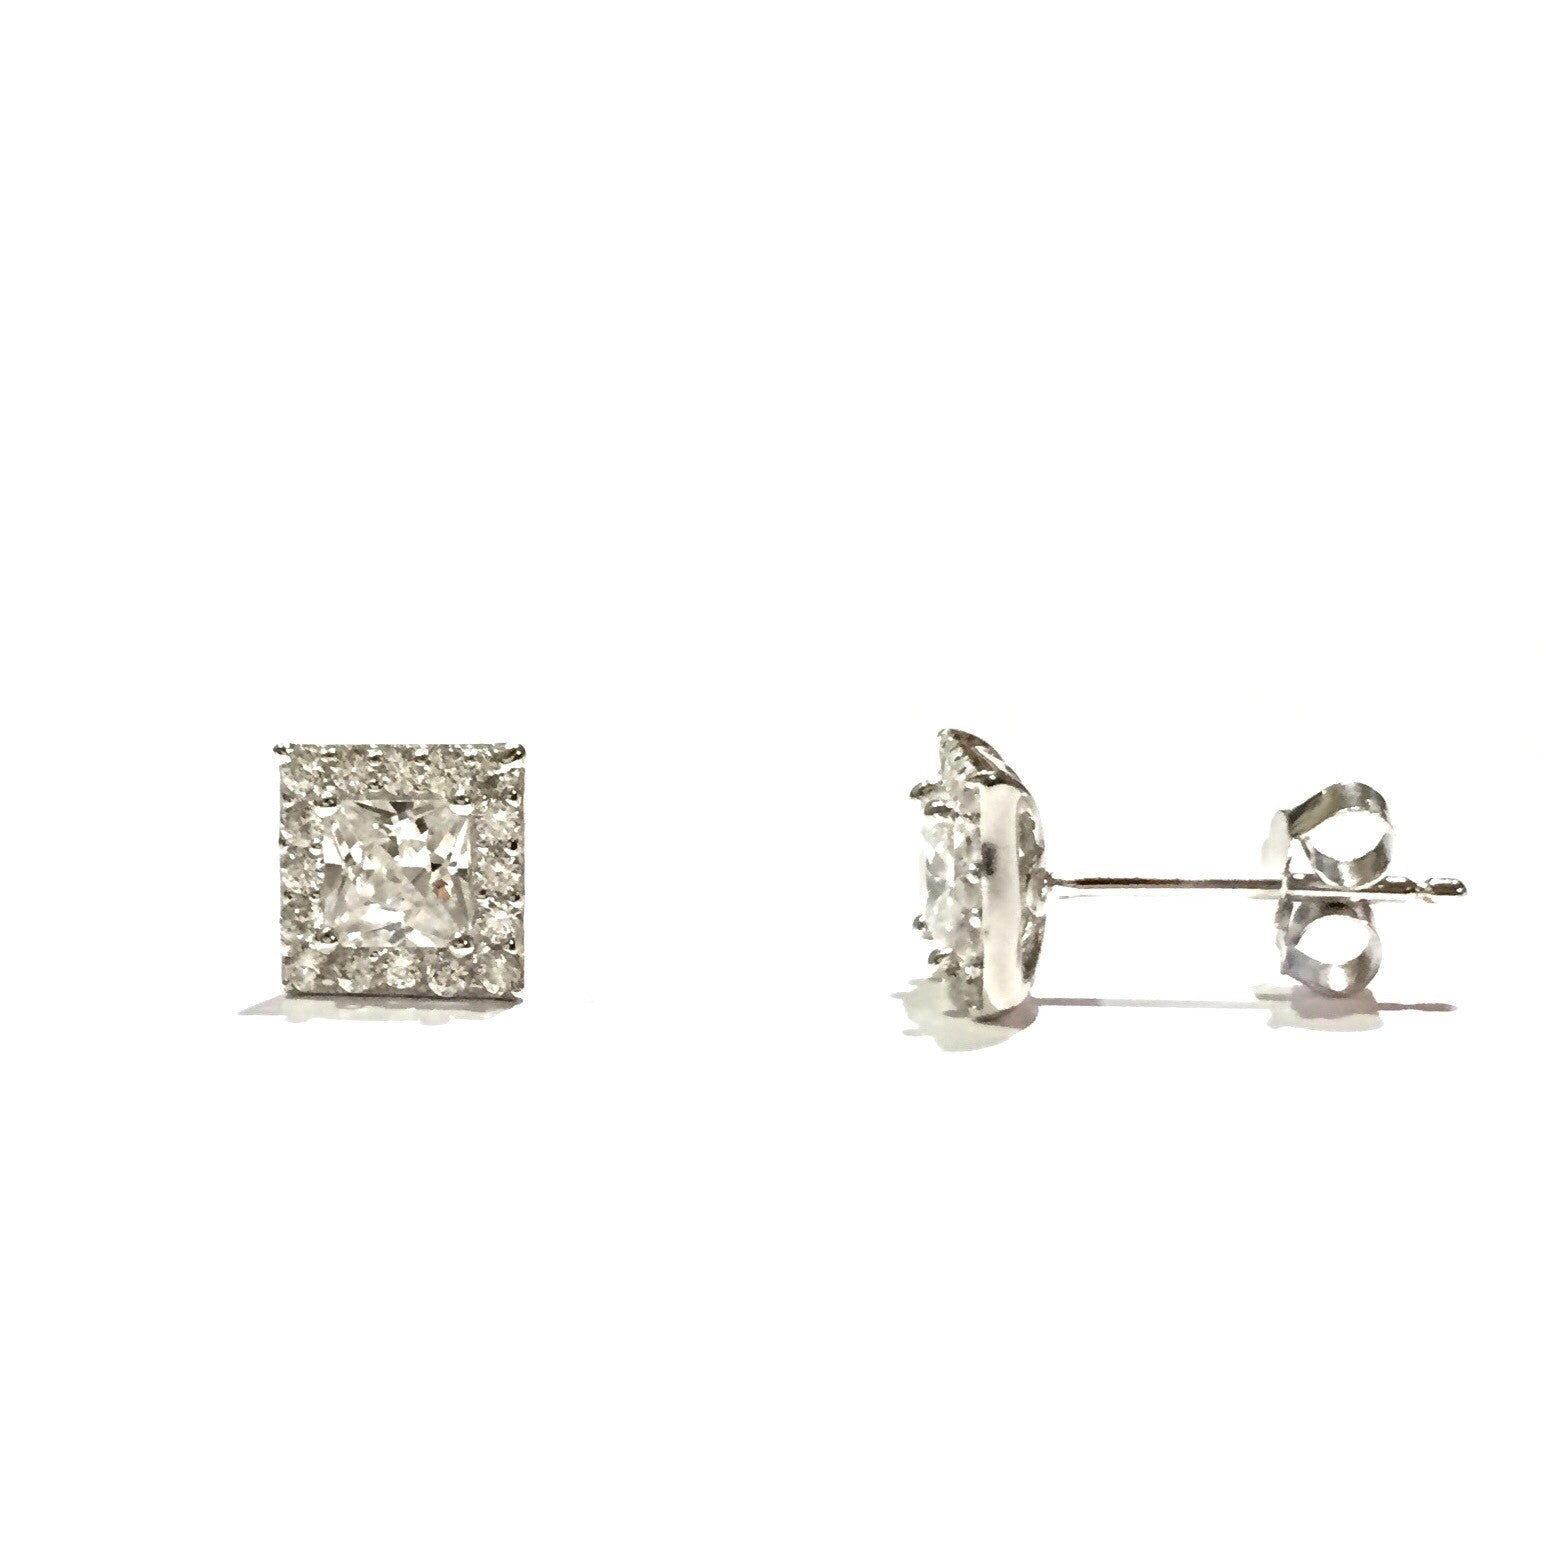 CZ Square Posts, $14 | Sterling Silver | Light Years Jewelry